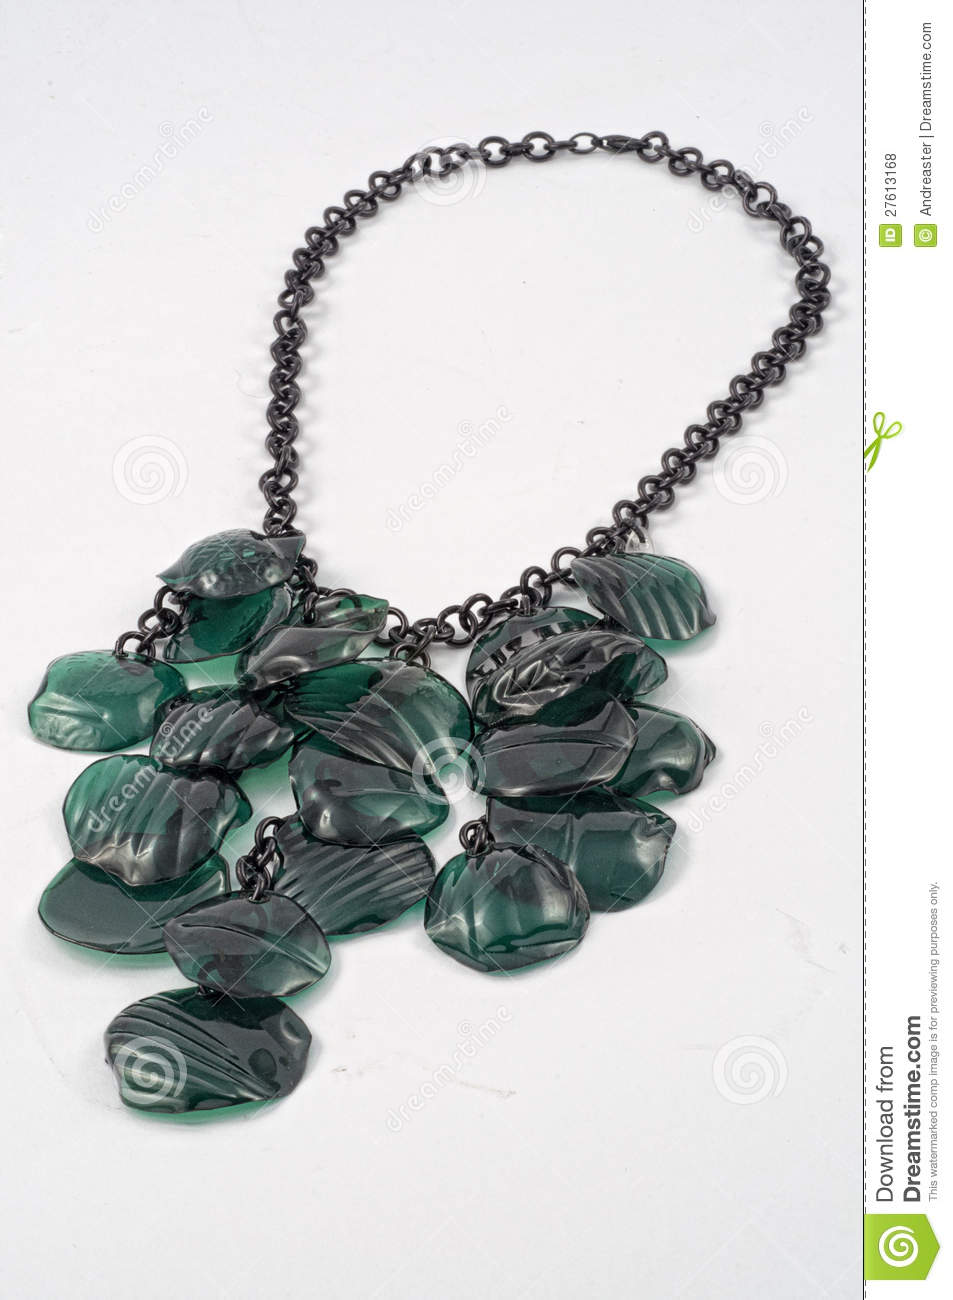 Ecojewelry necklace from recycled plastic bottles stock for Jewelry made from plastic bottles